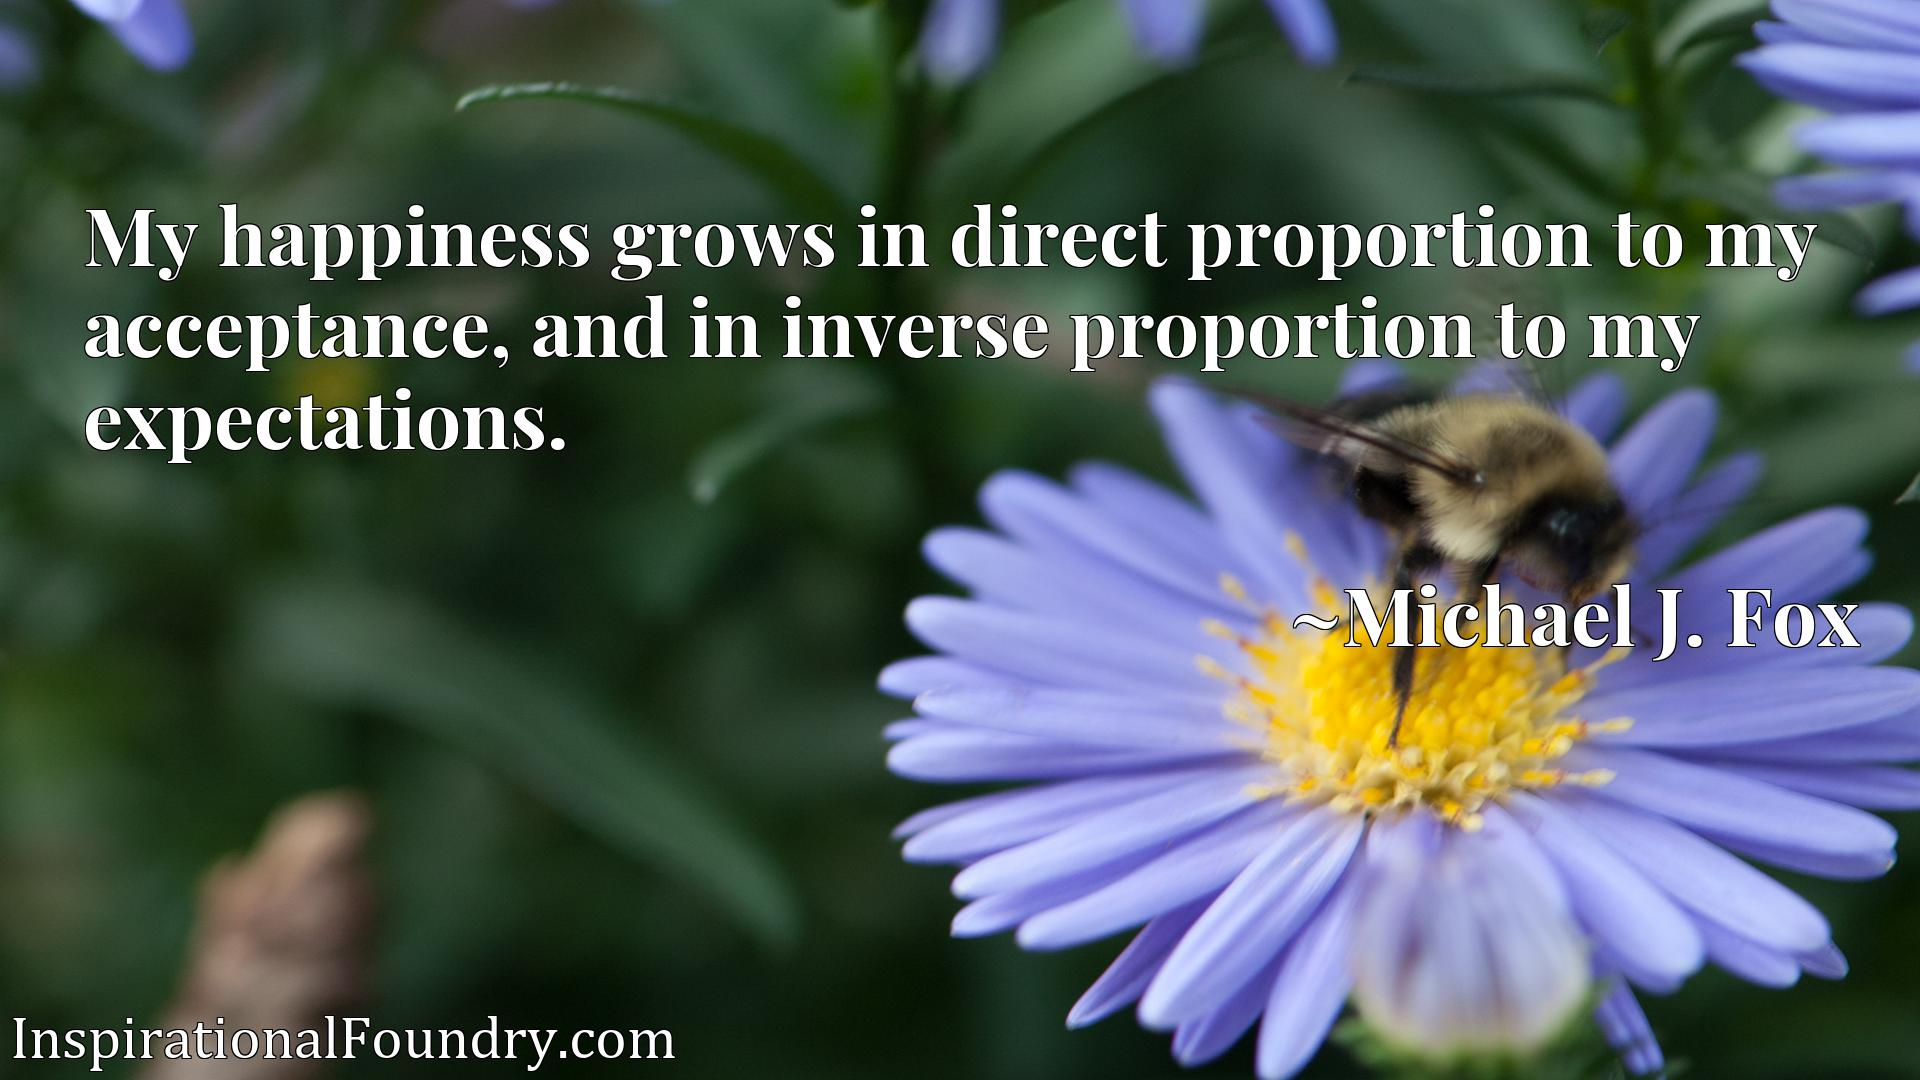 Quote Picture :My happiness grows in direct proportion to my acceptance, and in inverse proportion to my expectations.